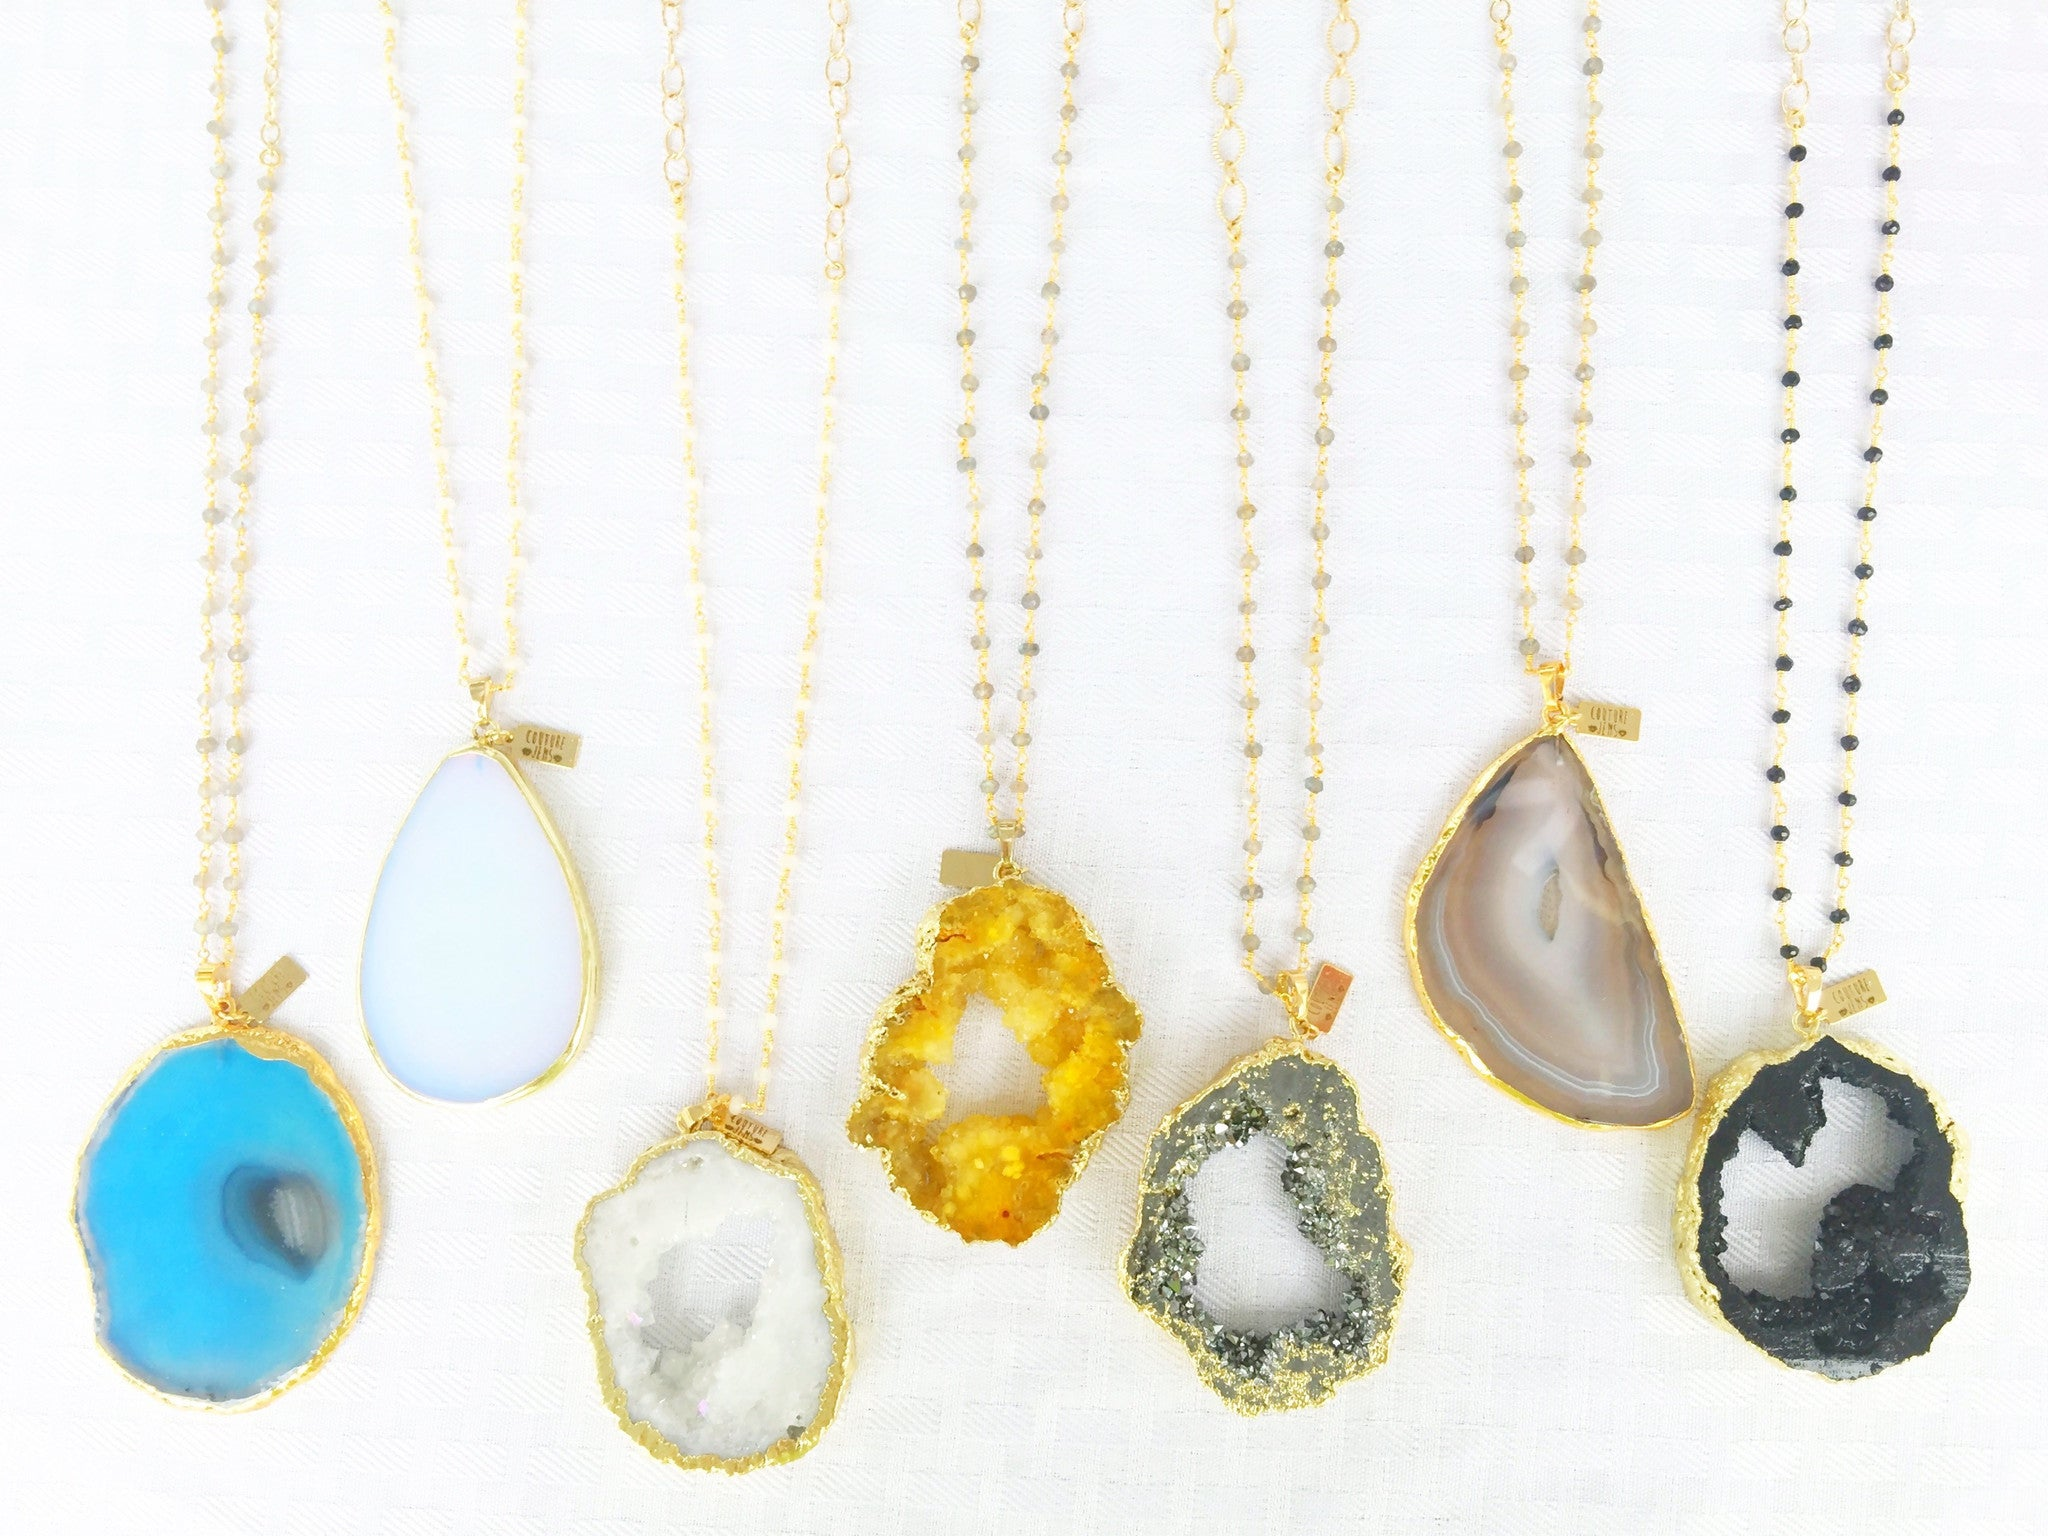 Agate/Druzy + Gemstone Beaded Chain Necklaces